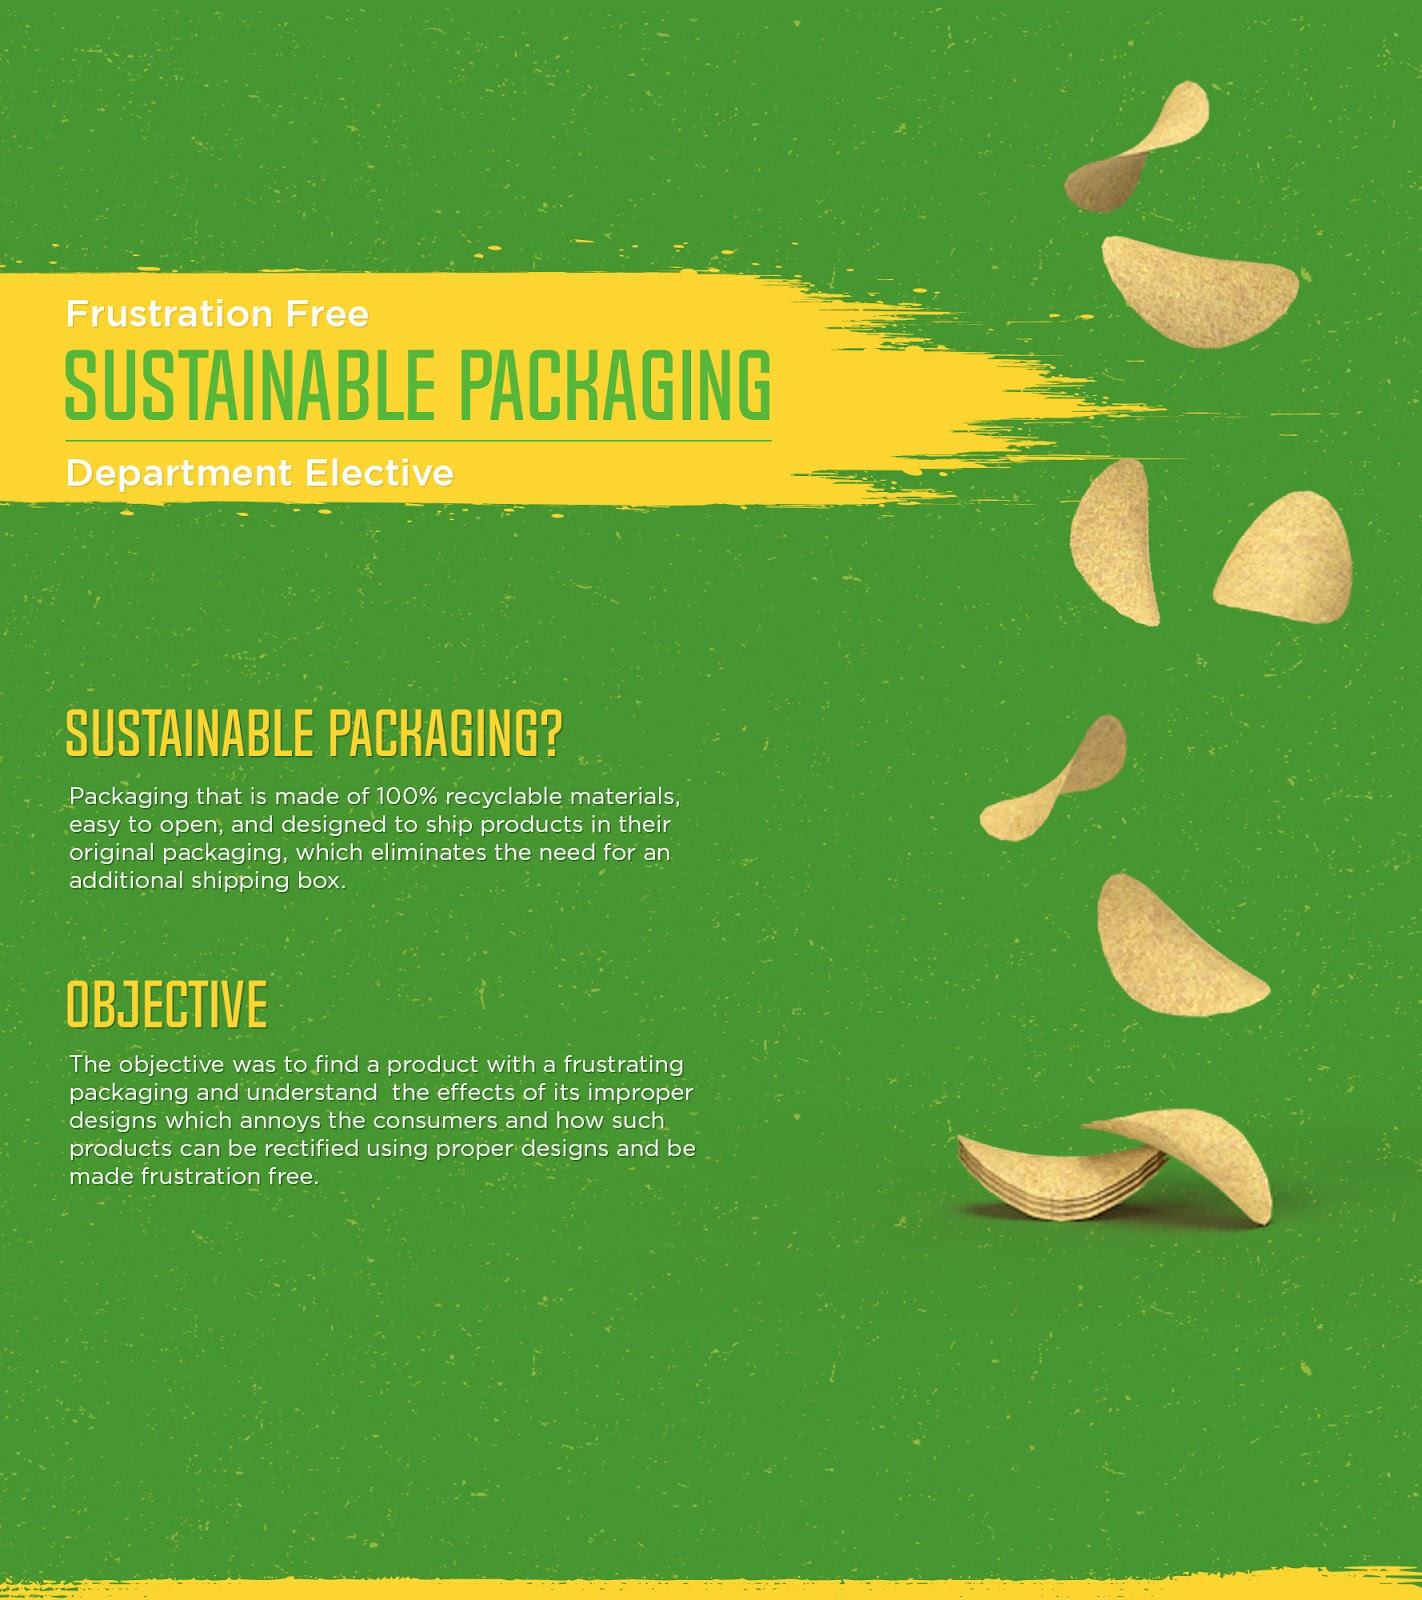 Pringles - Frustration Free Student Packaging Concept